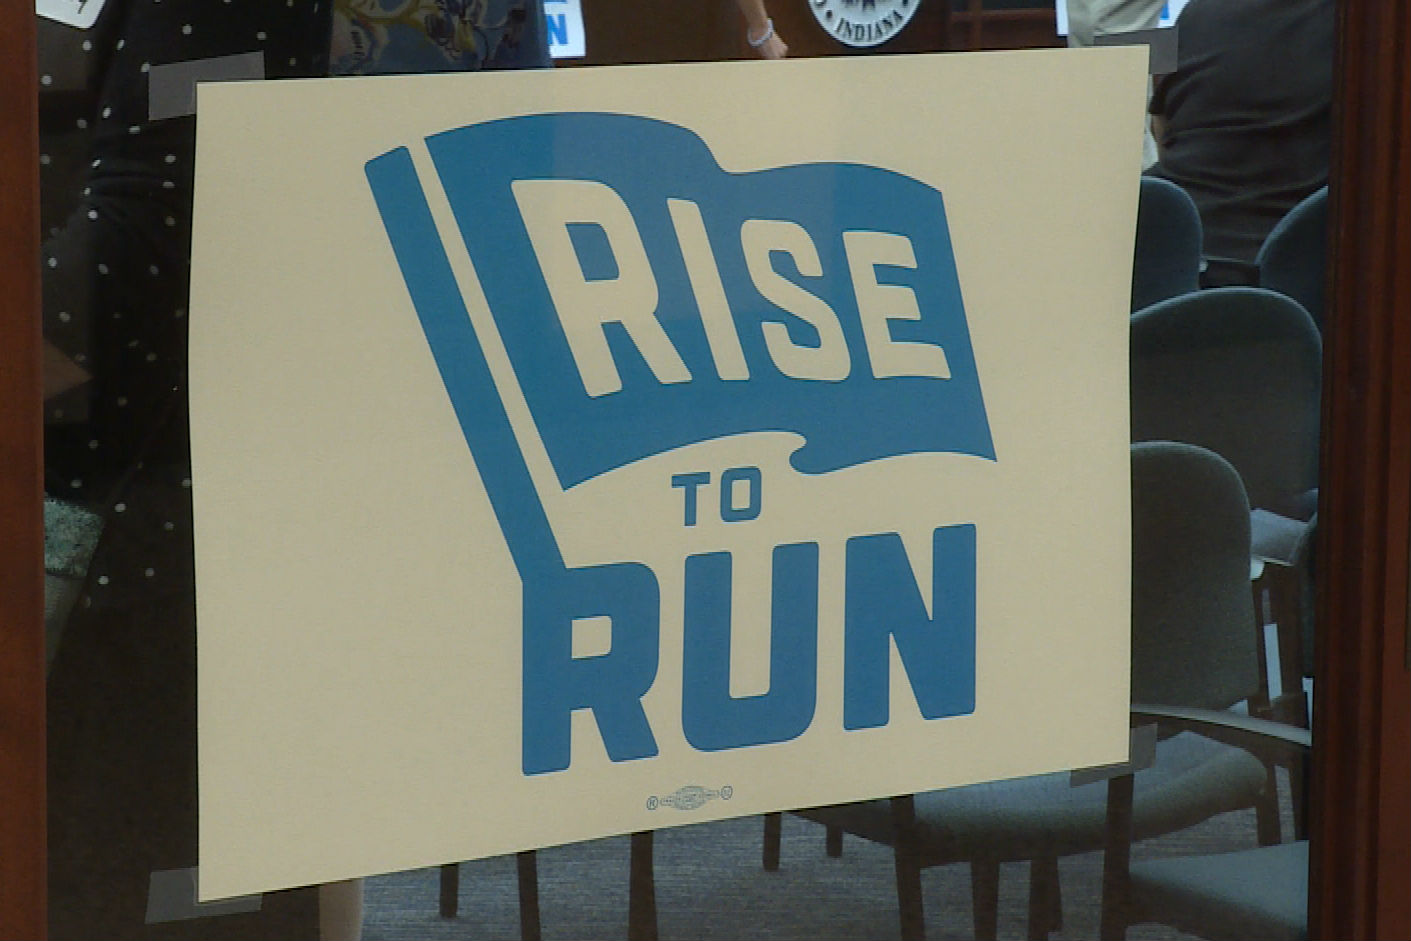 Rise To Run will include training and mentorship at both the local and national level for young women looking to run for office.